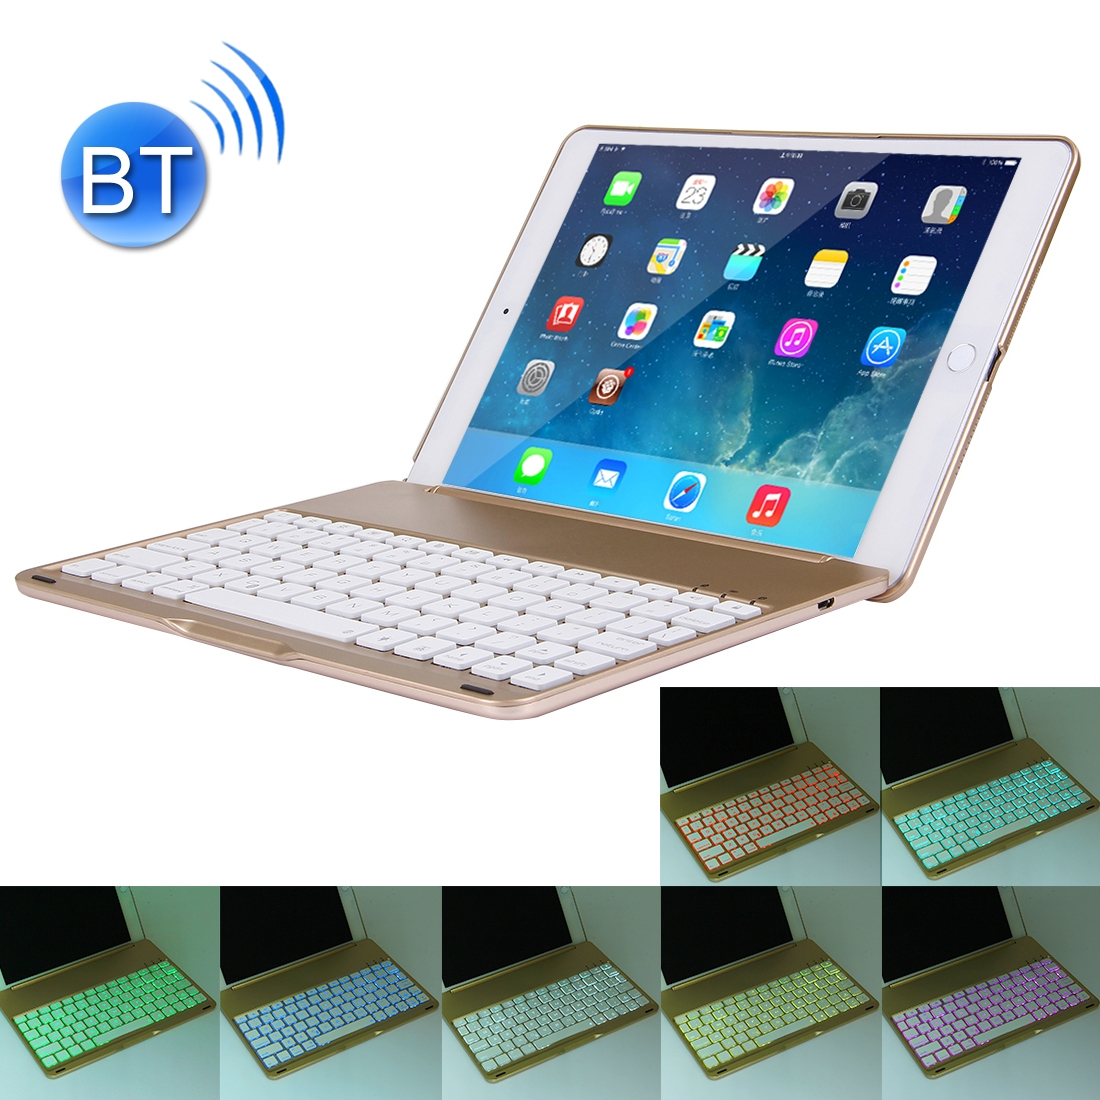 iPad Air 2 Case With Keyboard For iPad Air 2, Protective Case With Backlit Bluetooth Keyboard (Gold)